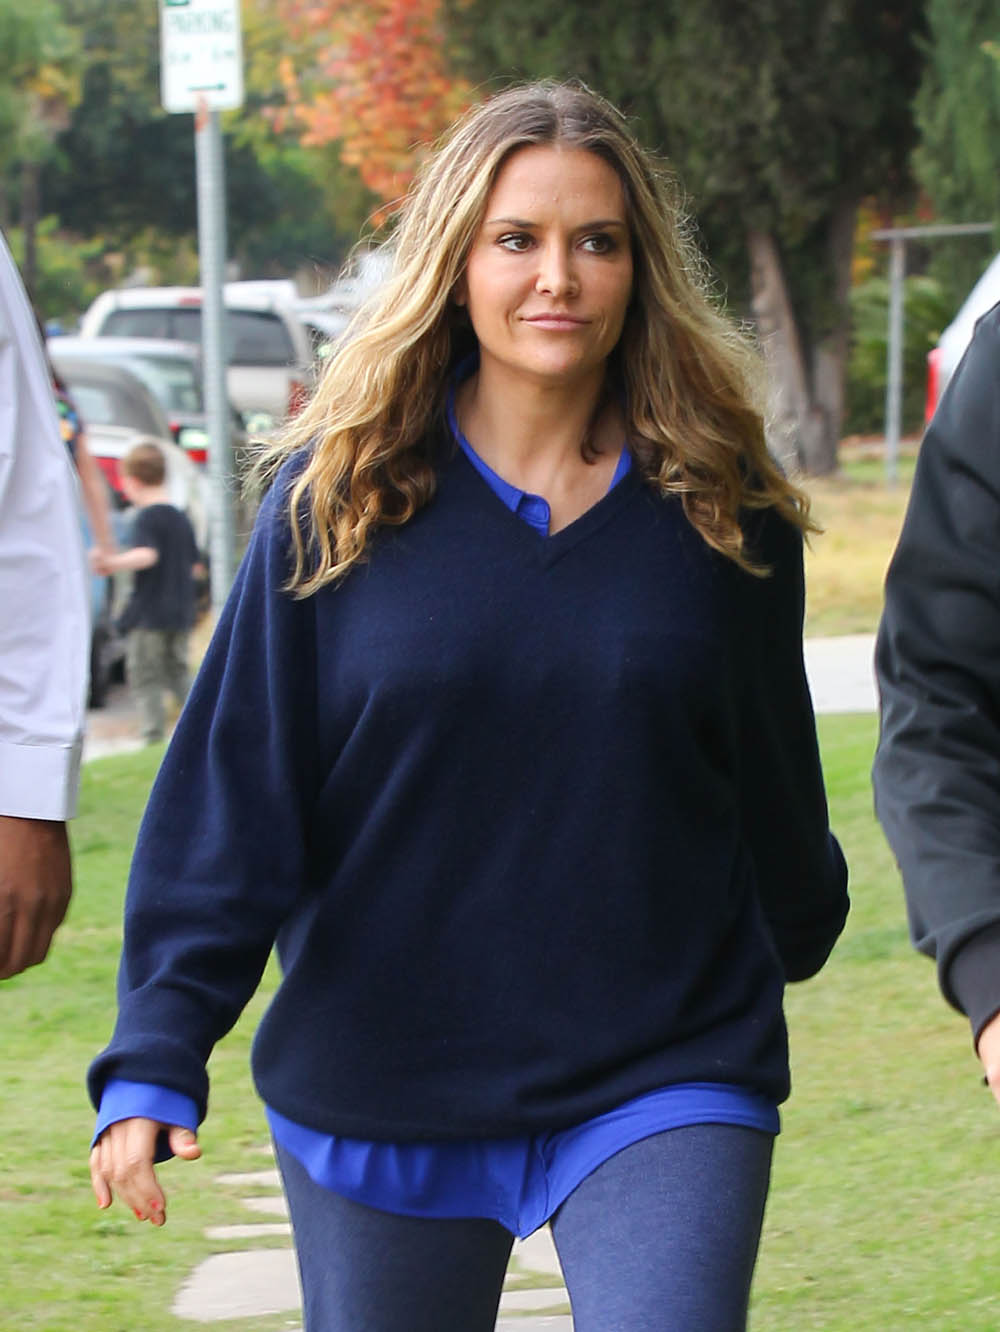 brooke mueller crack